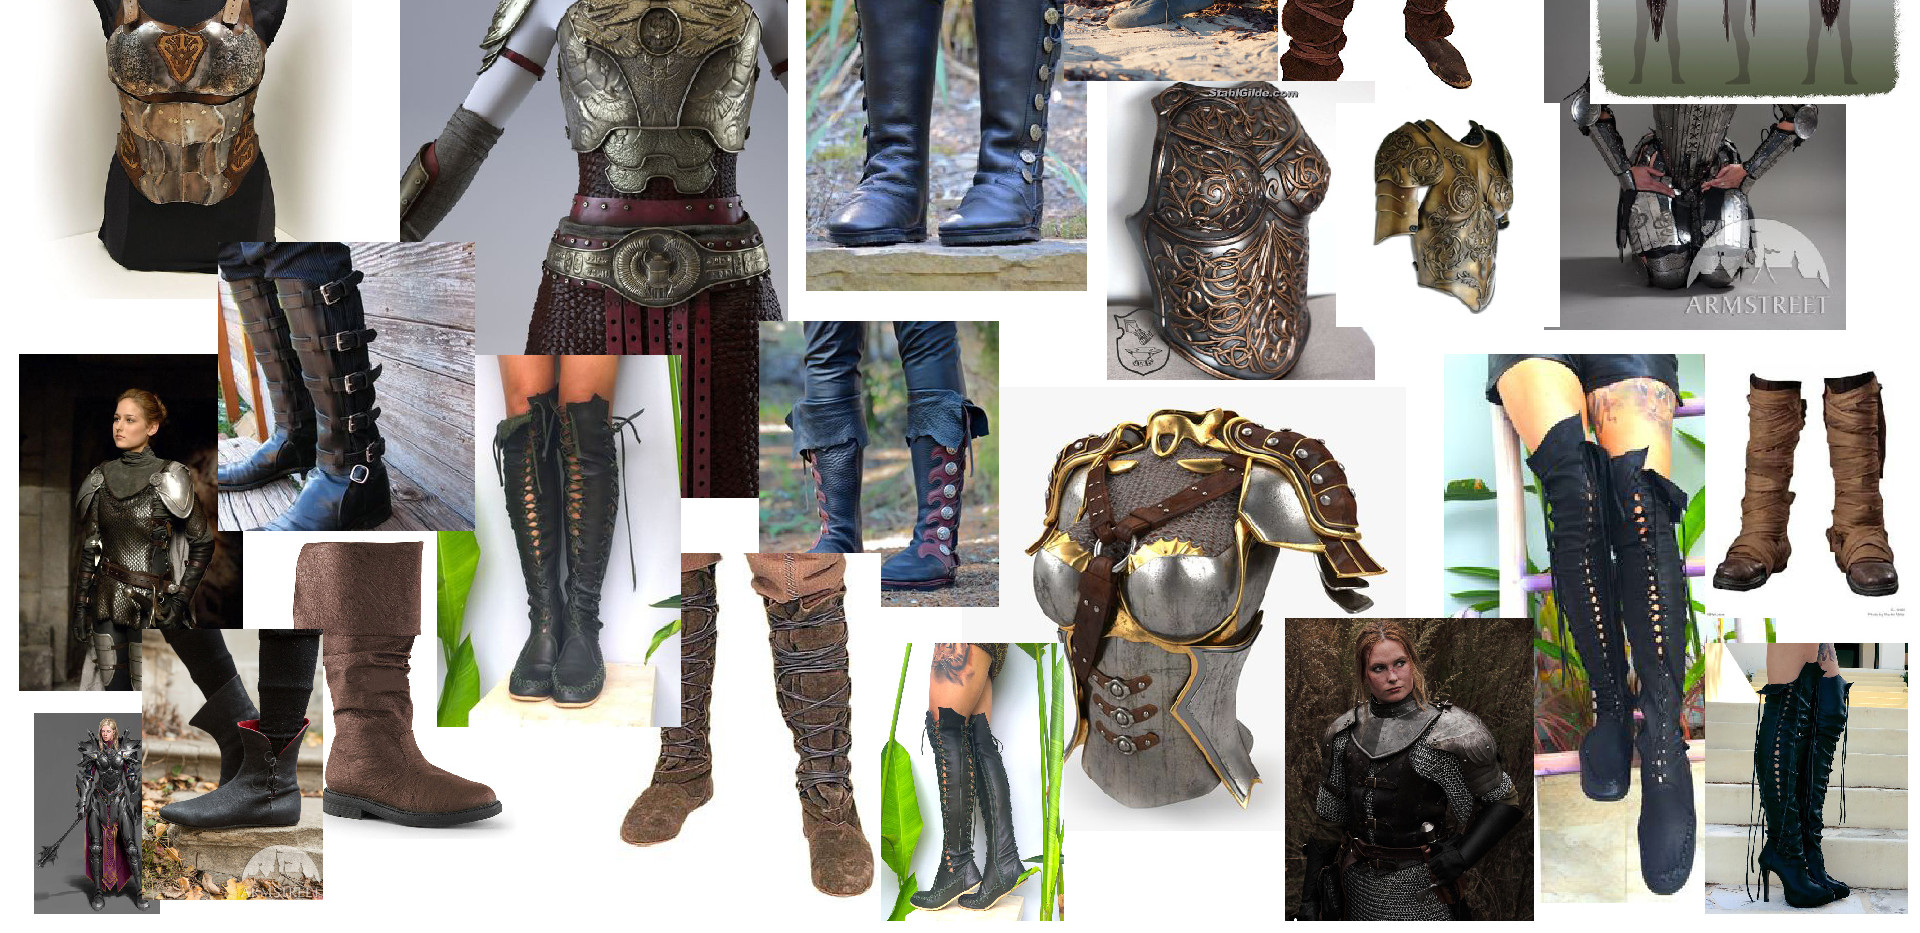 Half-Orc Clothing Concept